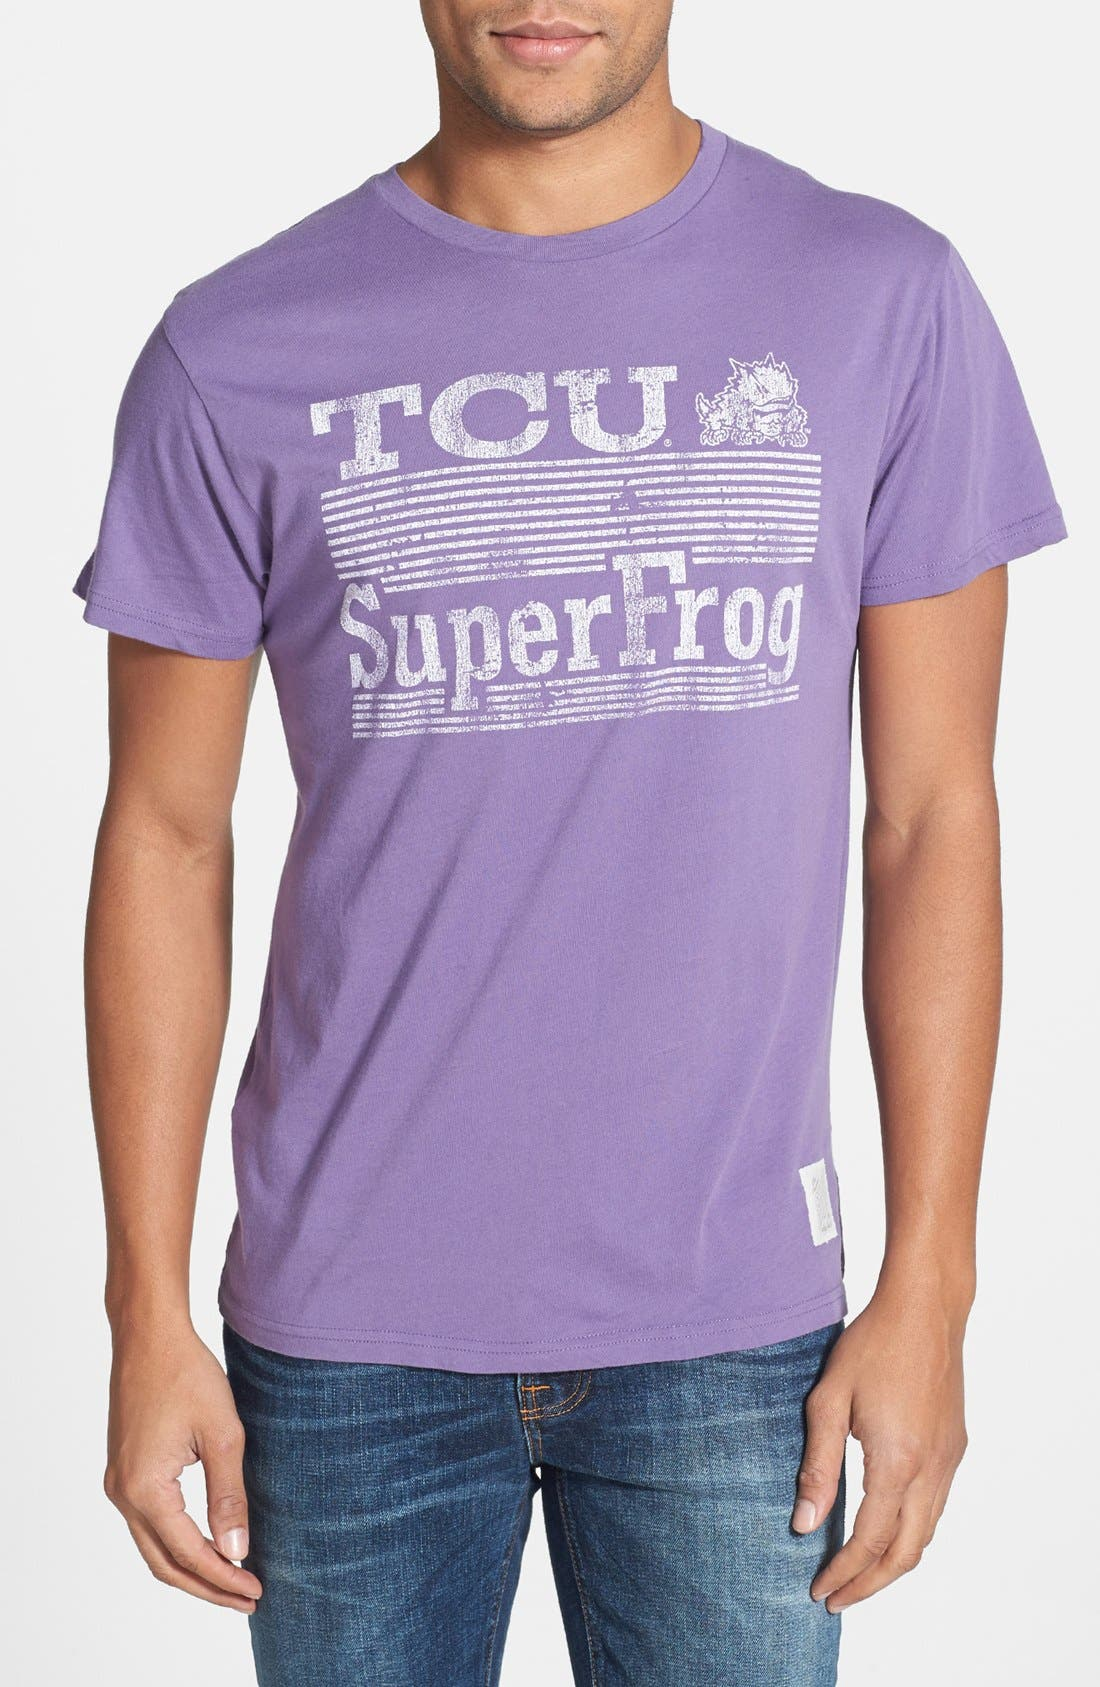 Main Image - Retro Brand 'TCU Horned Frogs' Team T-Shirt